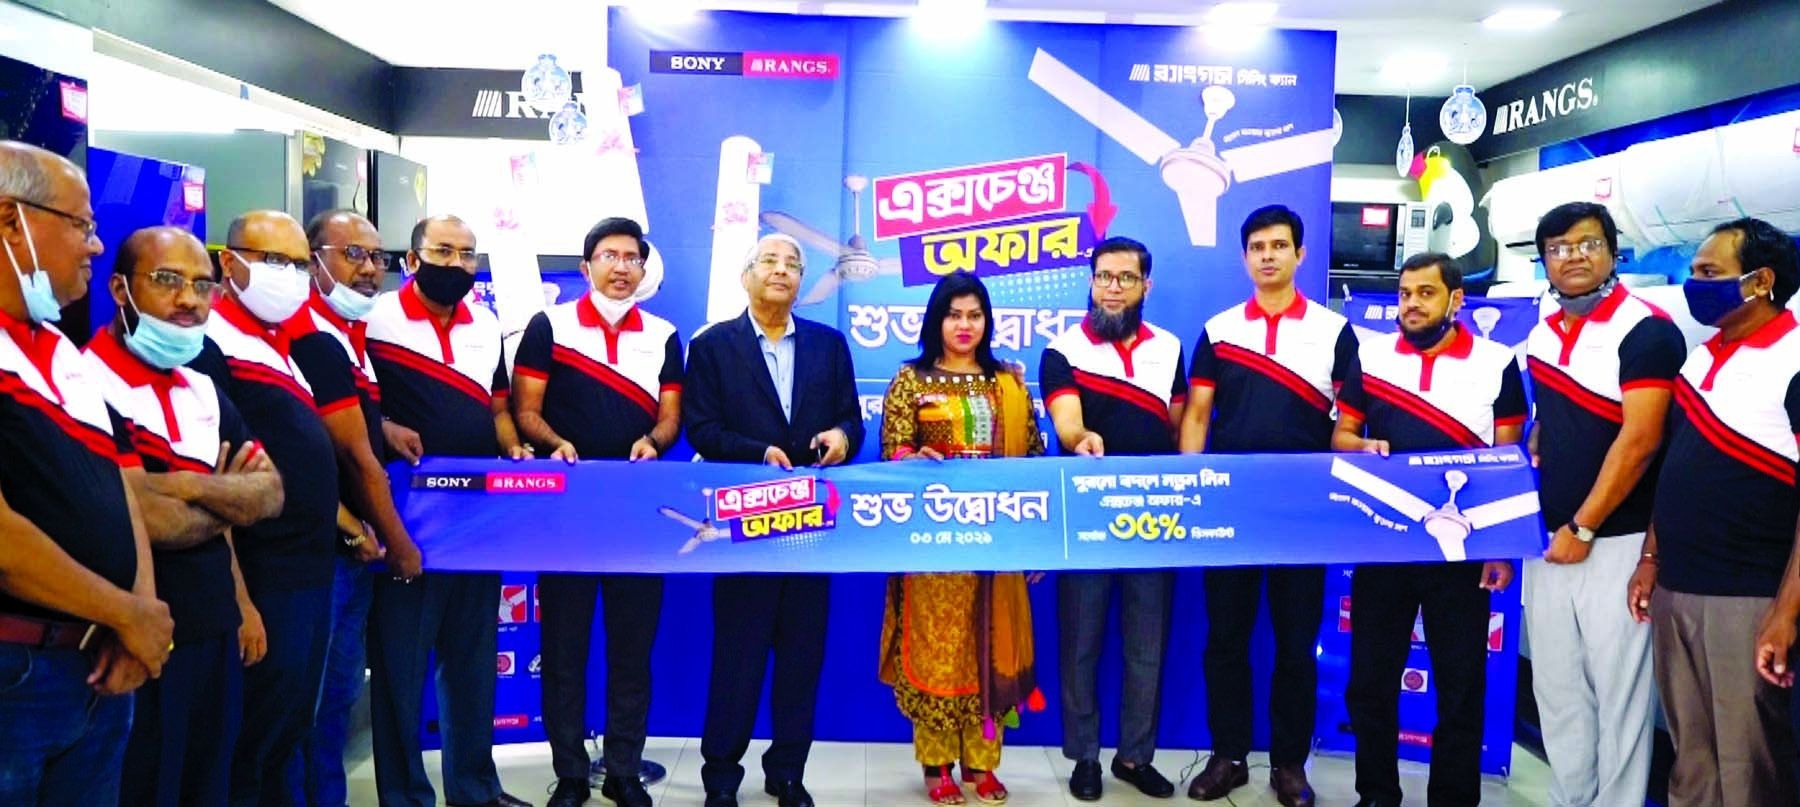 Akhter Hussain, Chairman of Rangs Electronics Limited, inaugurating the company's 'Fan Exchange Offer' campaign at Sony-Rangs Showroom in capital's Tejgaon area recently. Under the offer, customer can exchange any branded, any sizes of old, damaged, outdated Ceiling Fan to get Rangs